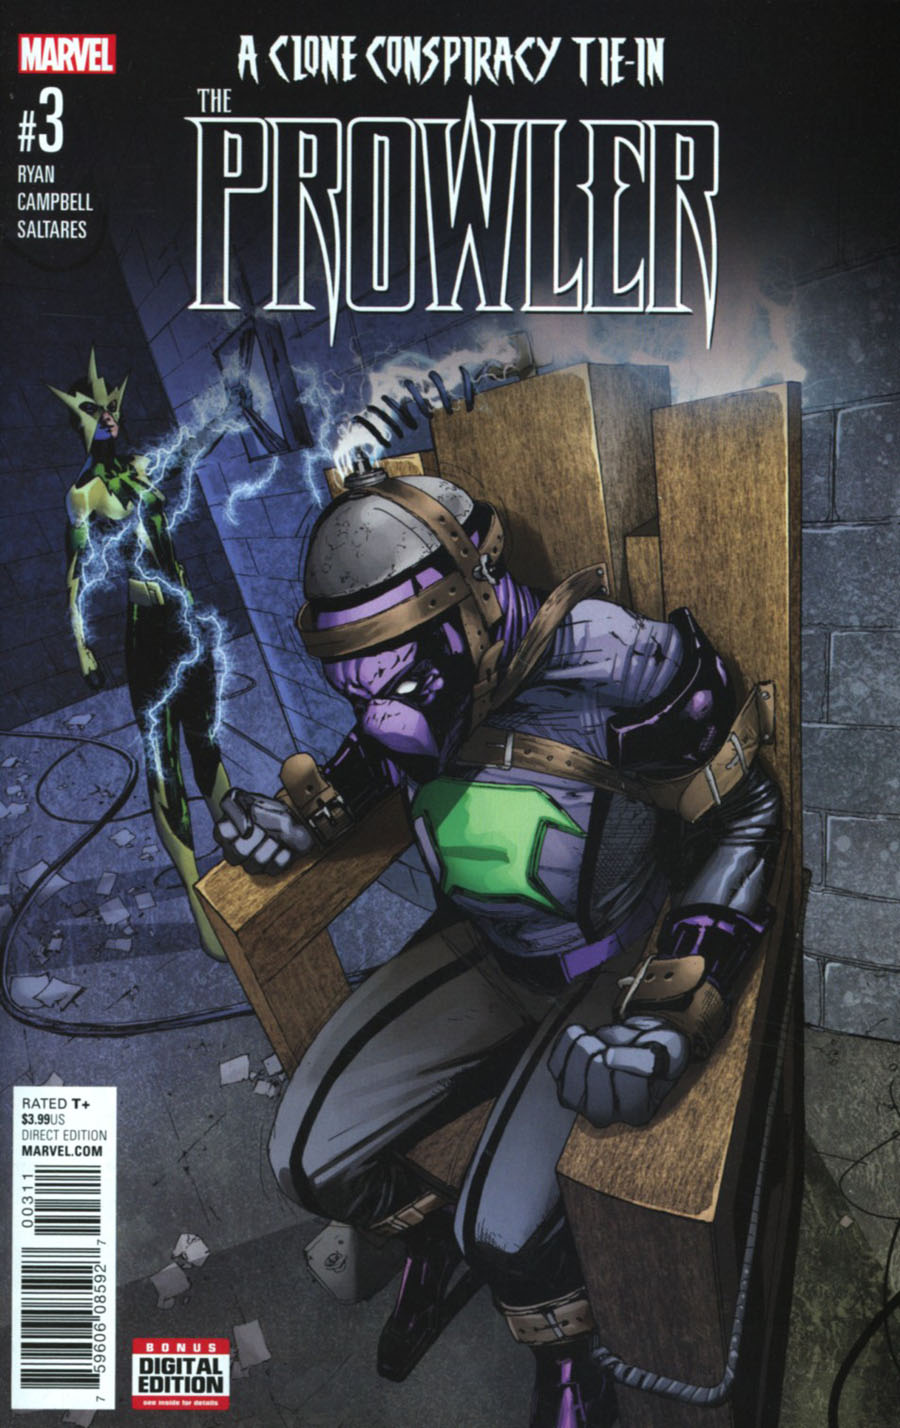 Prowler (Marvel) Vol 2 #3 Cover A Regular Travel Foreman Cover (Clone Conspiracy Tie-In)